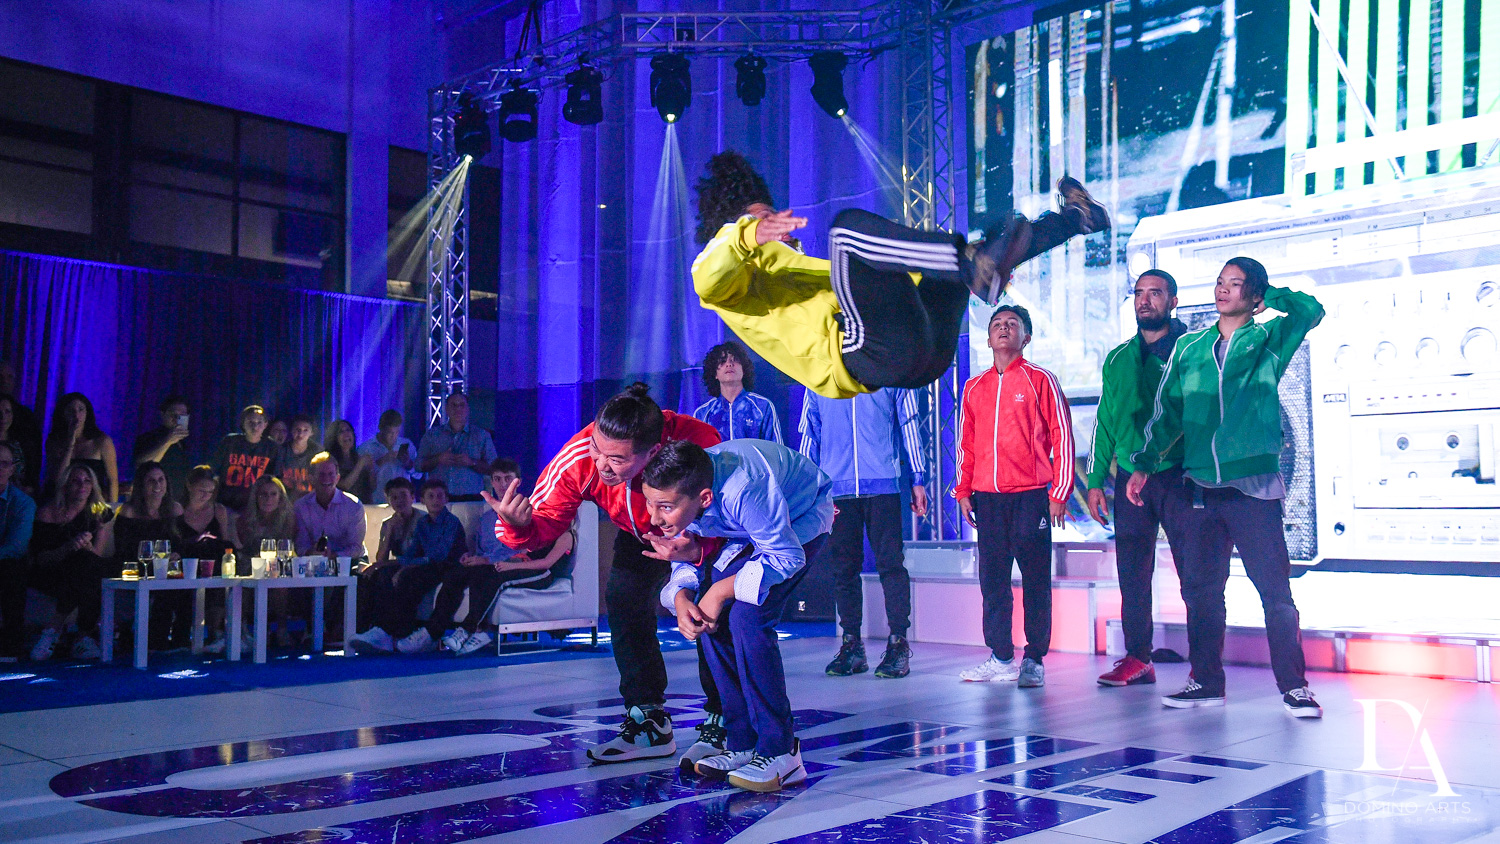 break dance show at Sports Theme Bar Mitzvah at DS Sports Plex by Domino Arts Photography